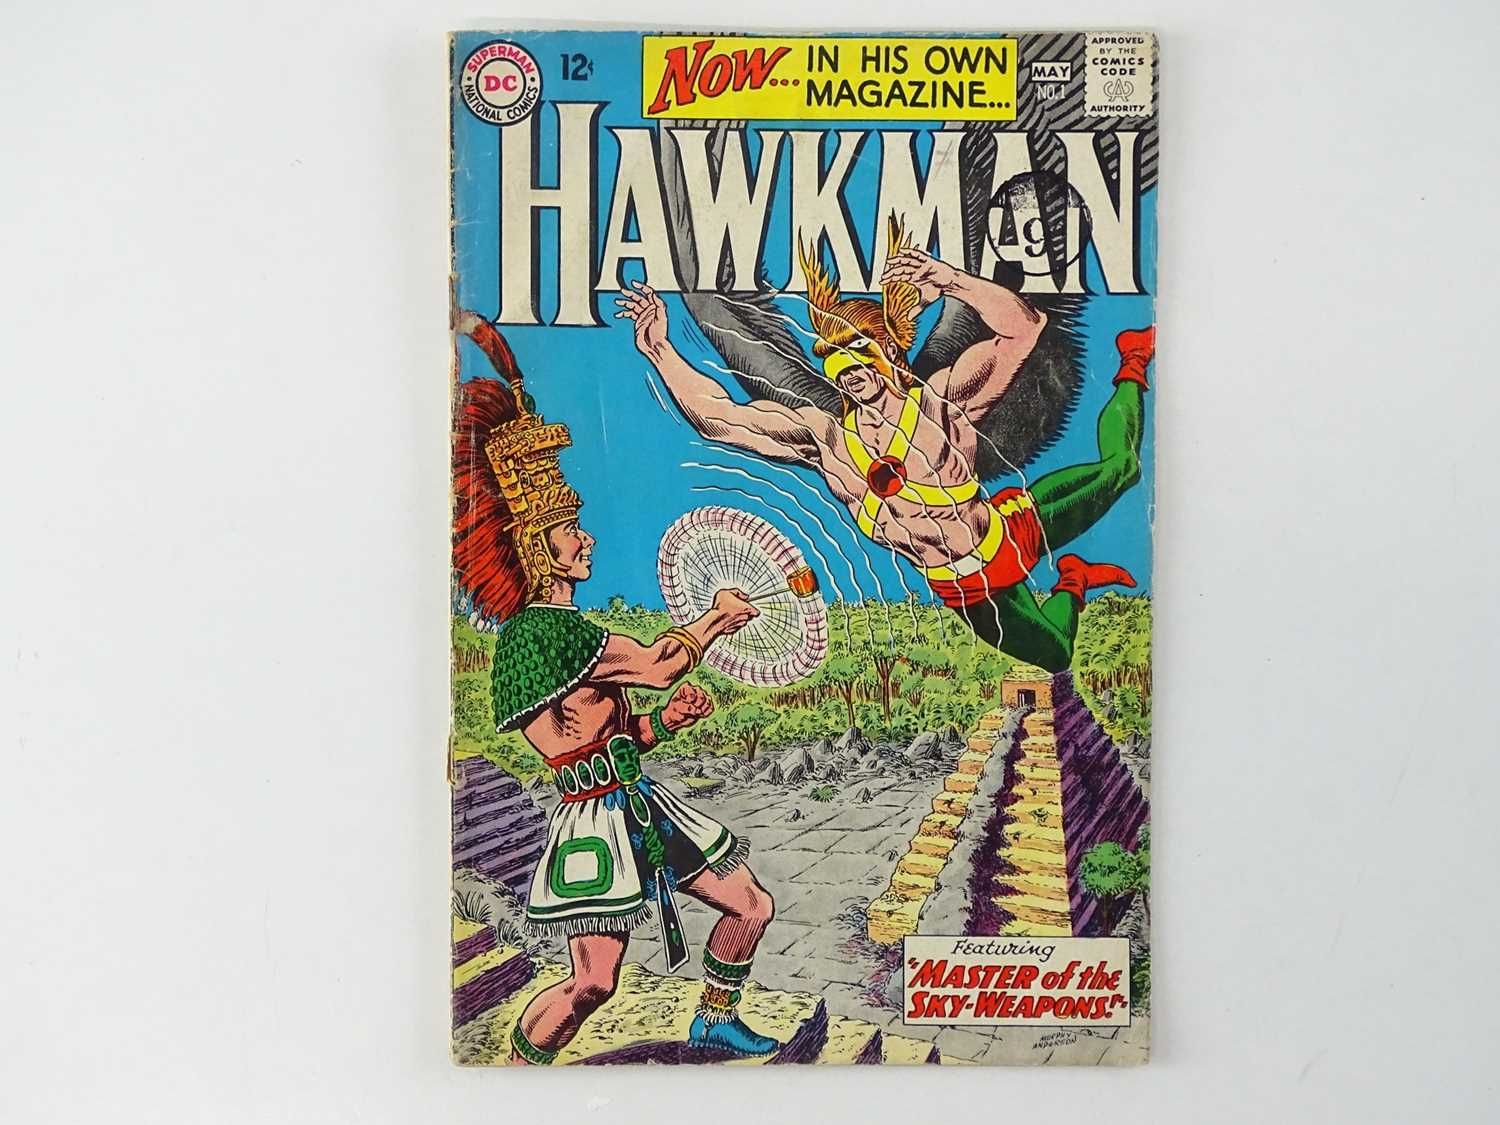 """HAWKMAN #1 - (DC - UK Cover Price) - First solo title for Hawkman gets after appearances in """"Brave"""